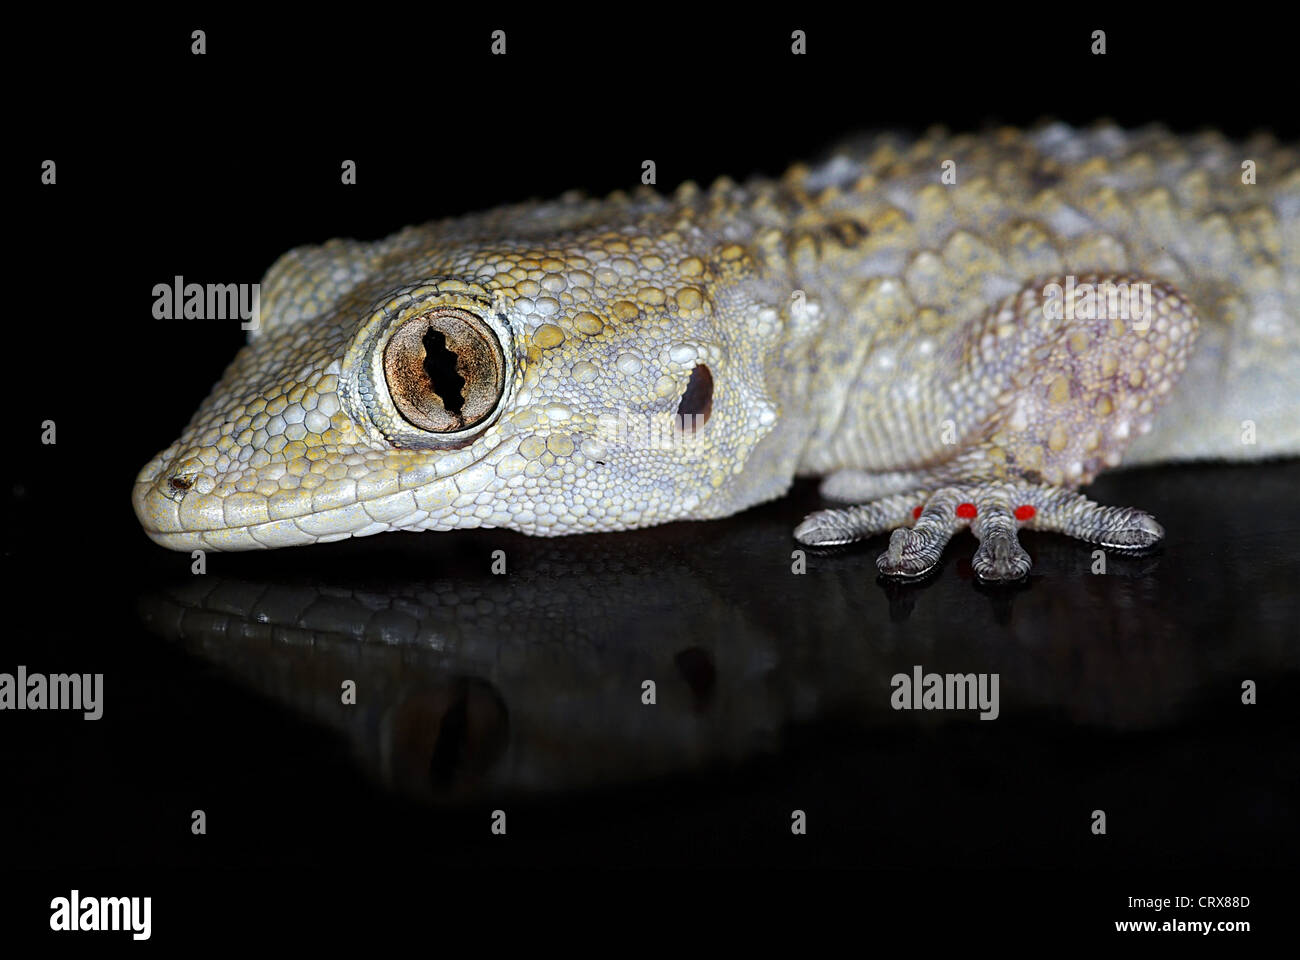 Portratit of European Common Gecko mirrored by dark background - Stock Image